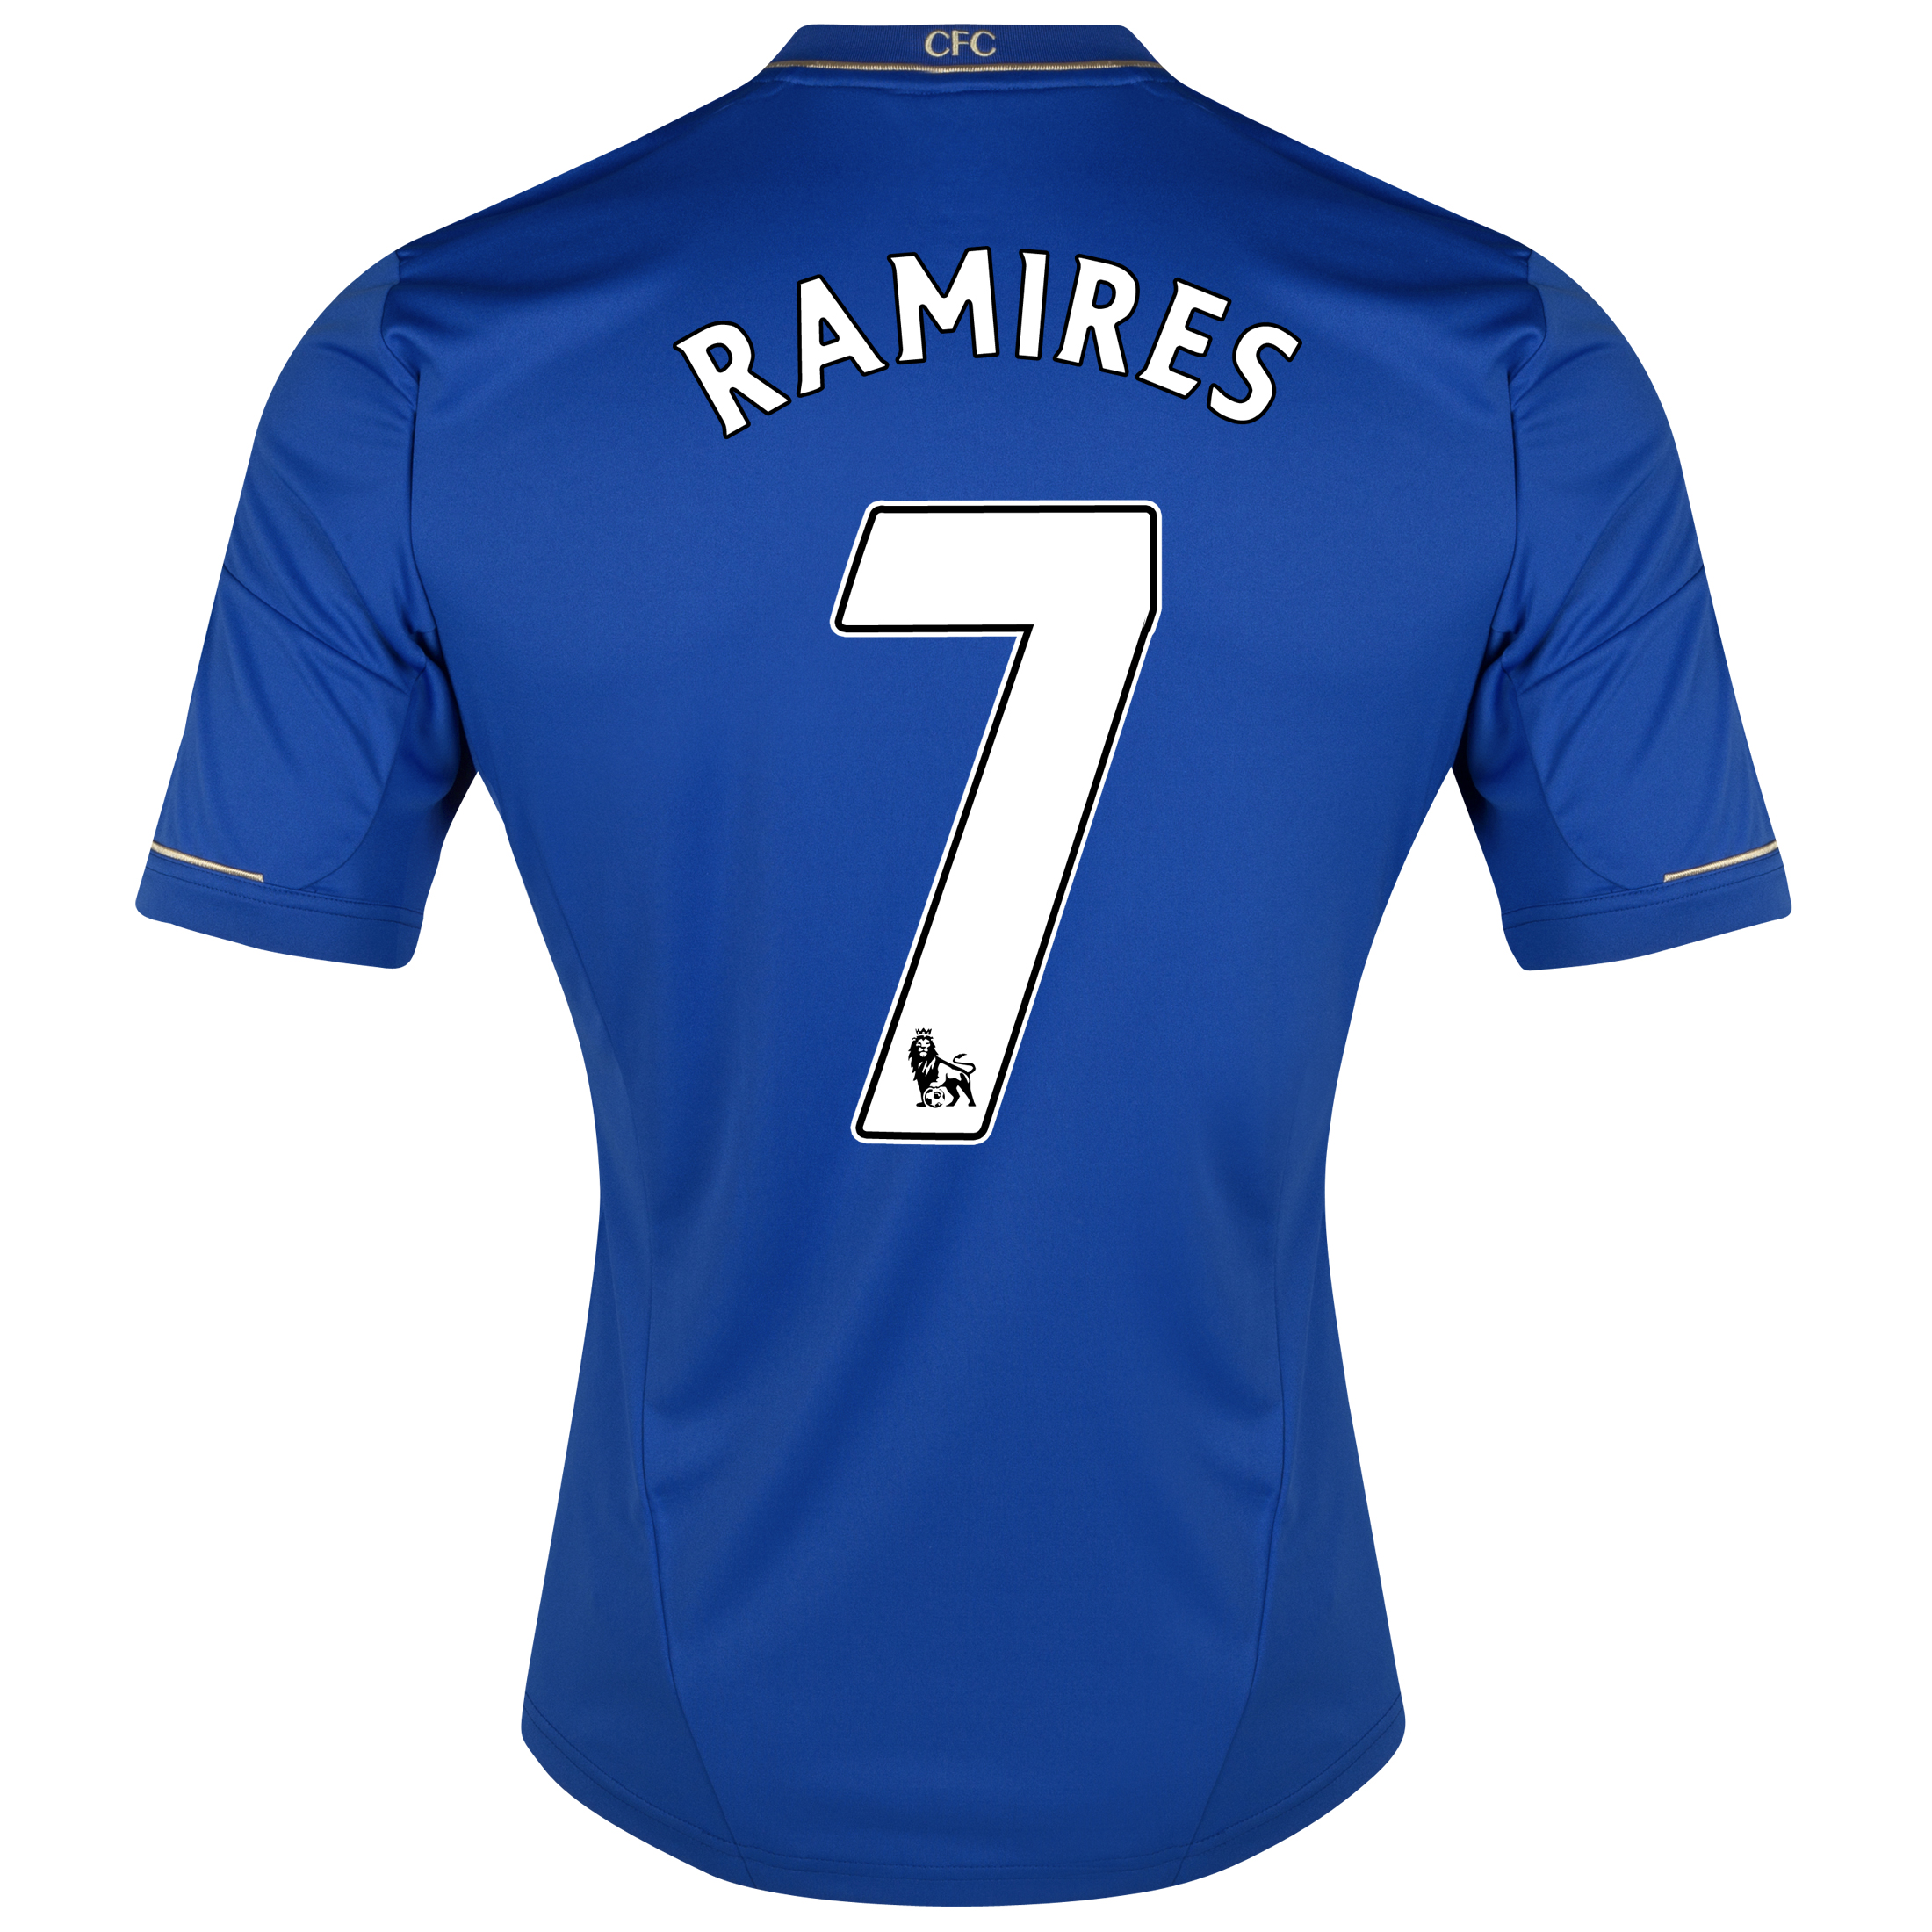 Chelsea Home Shirt 2012/13 with Ramires 7 printing